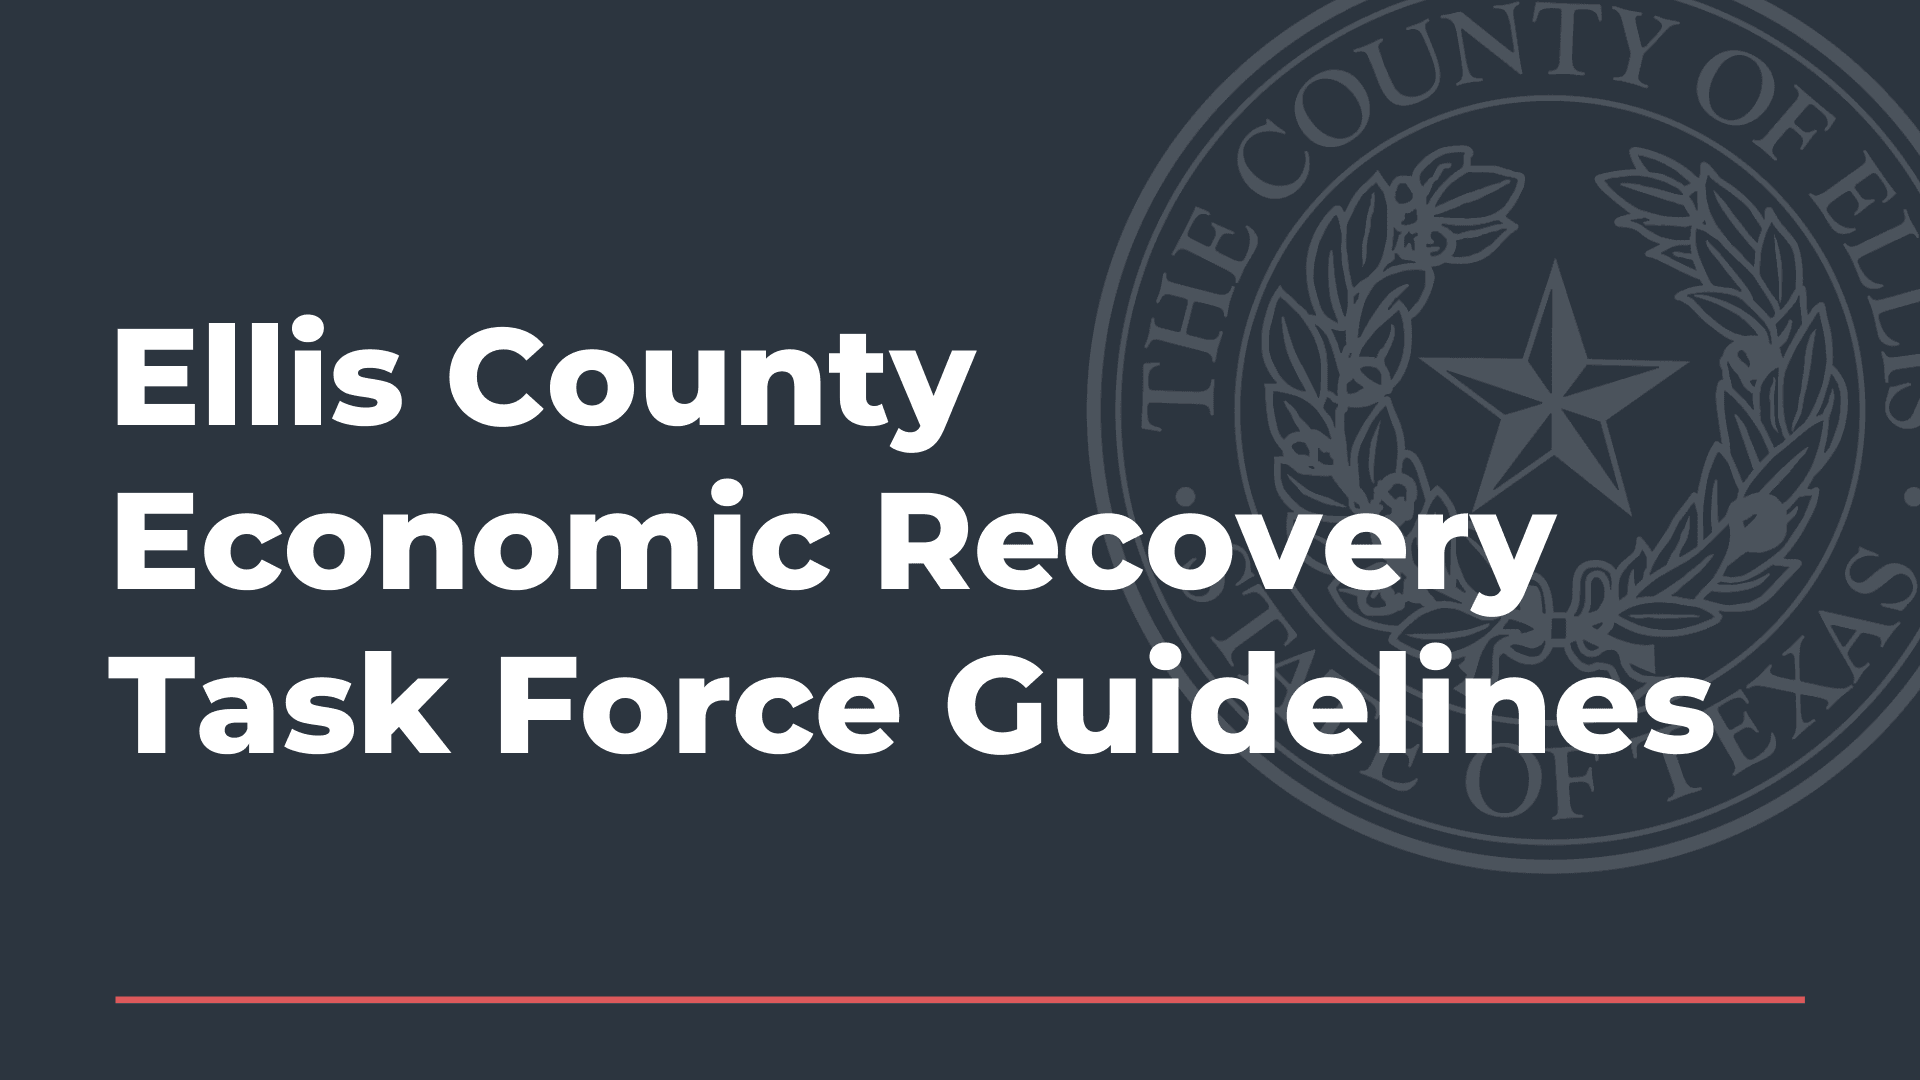 Ellis County Economic Recovery Task Force Guidelines